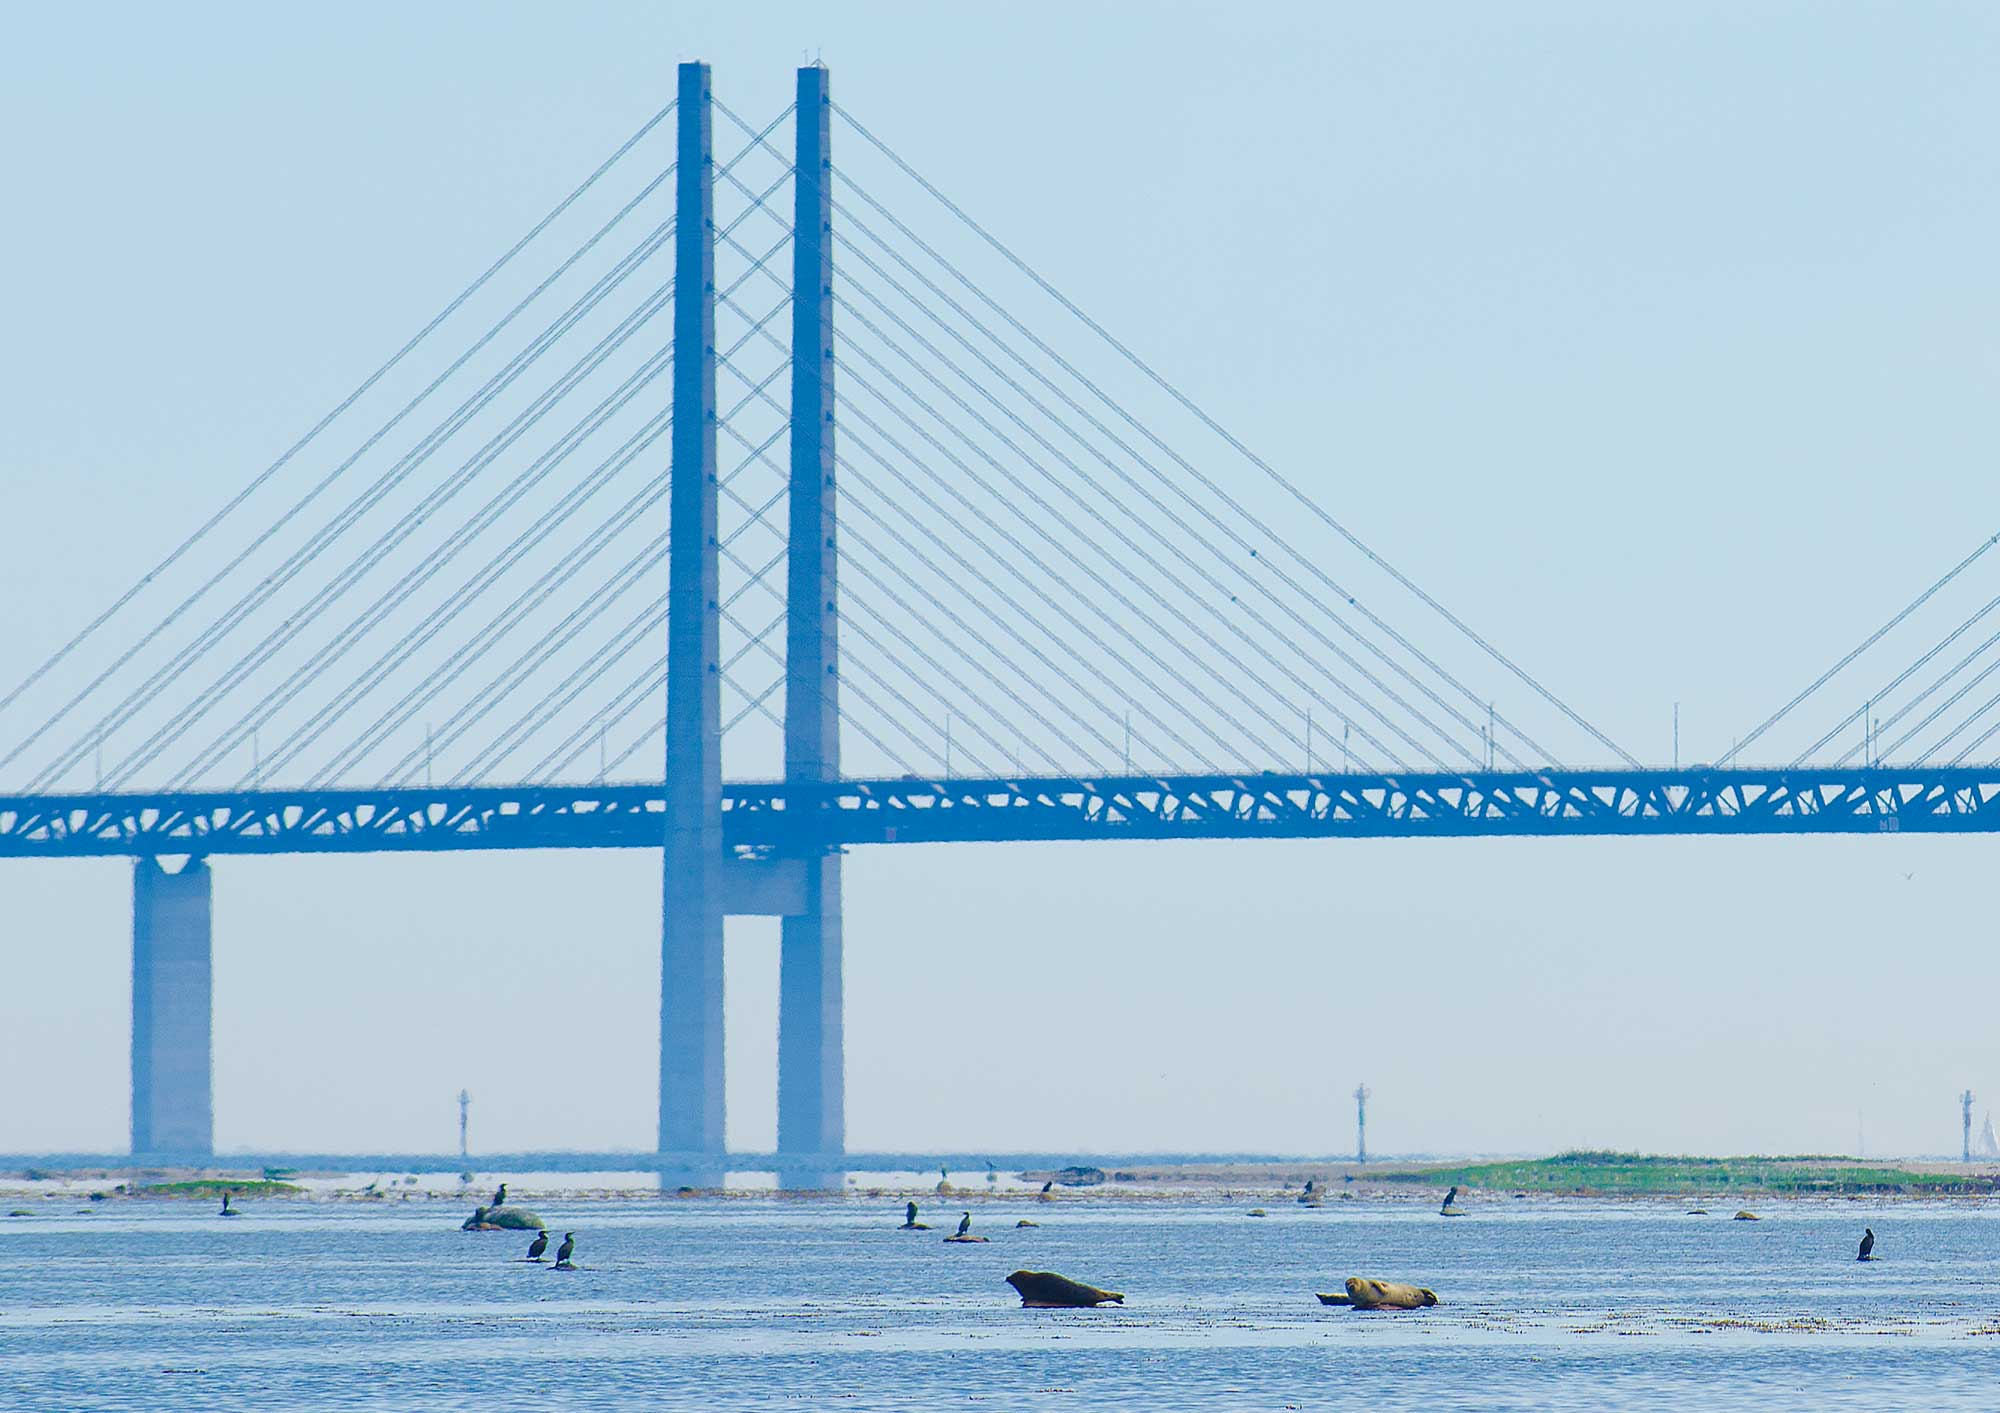 Oresund bridge - seals, sun and water